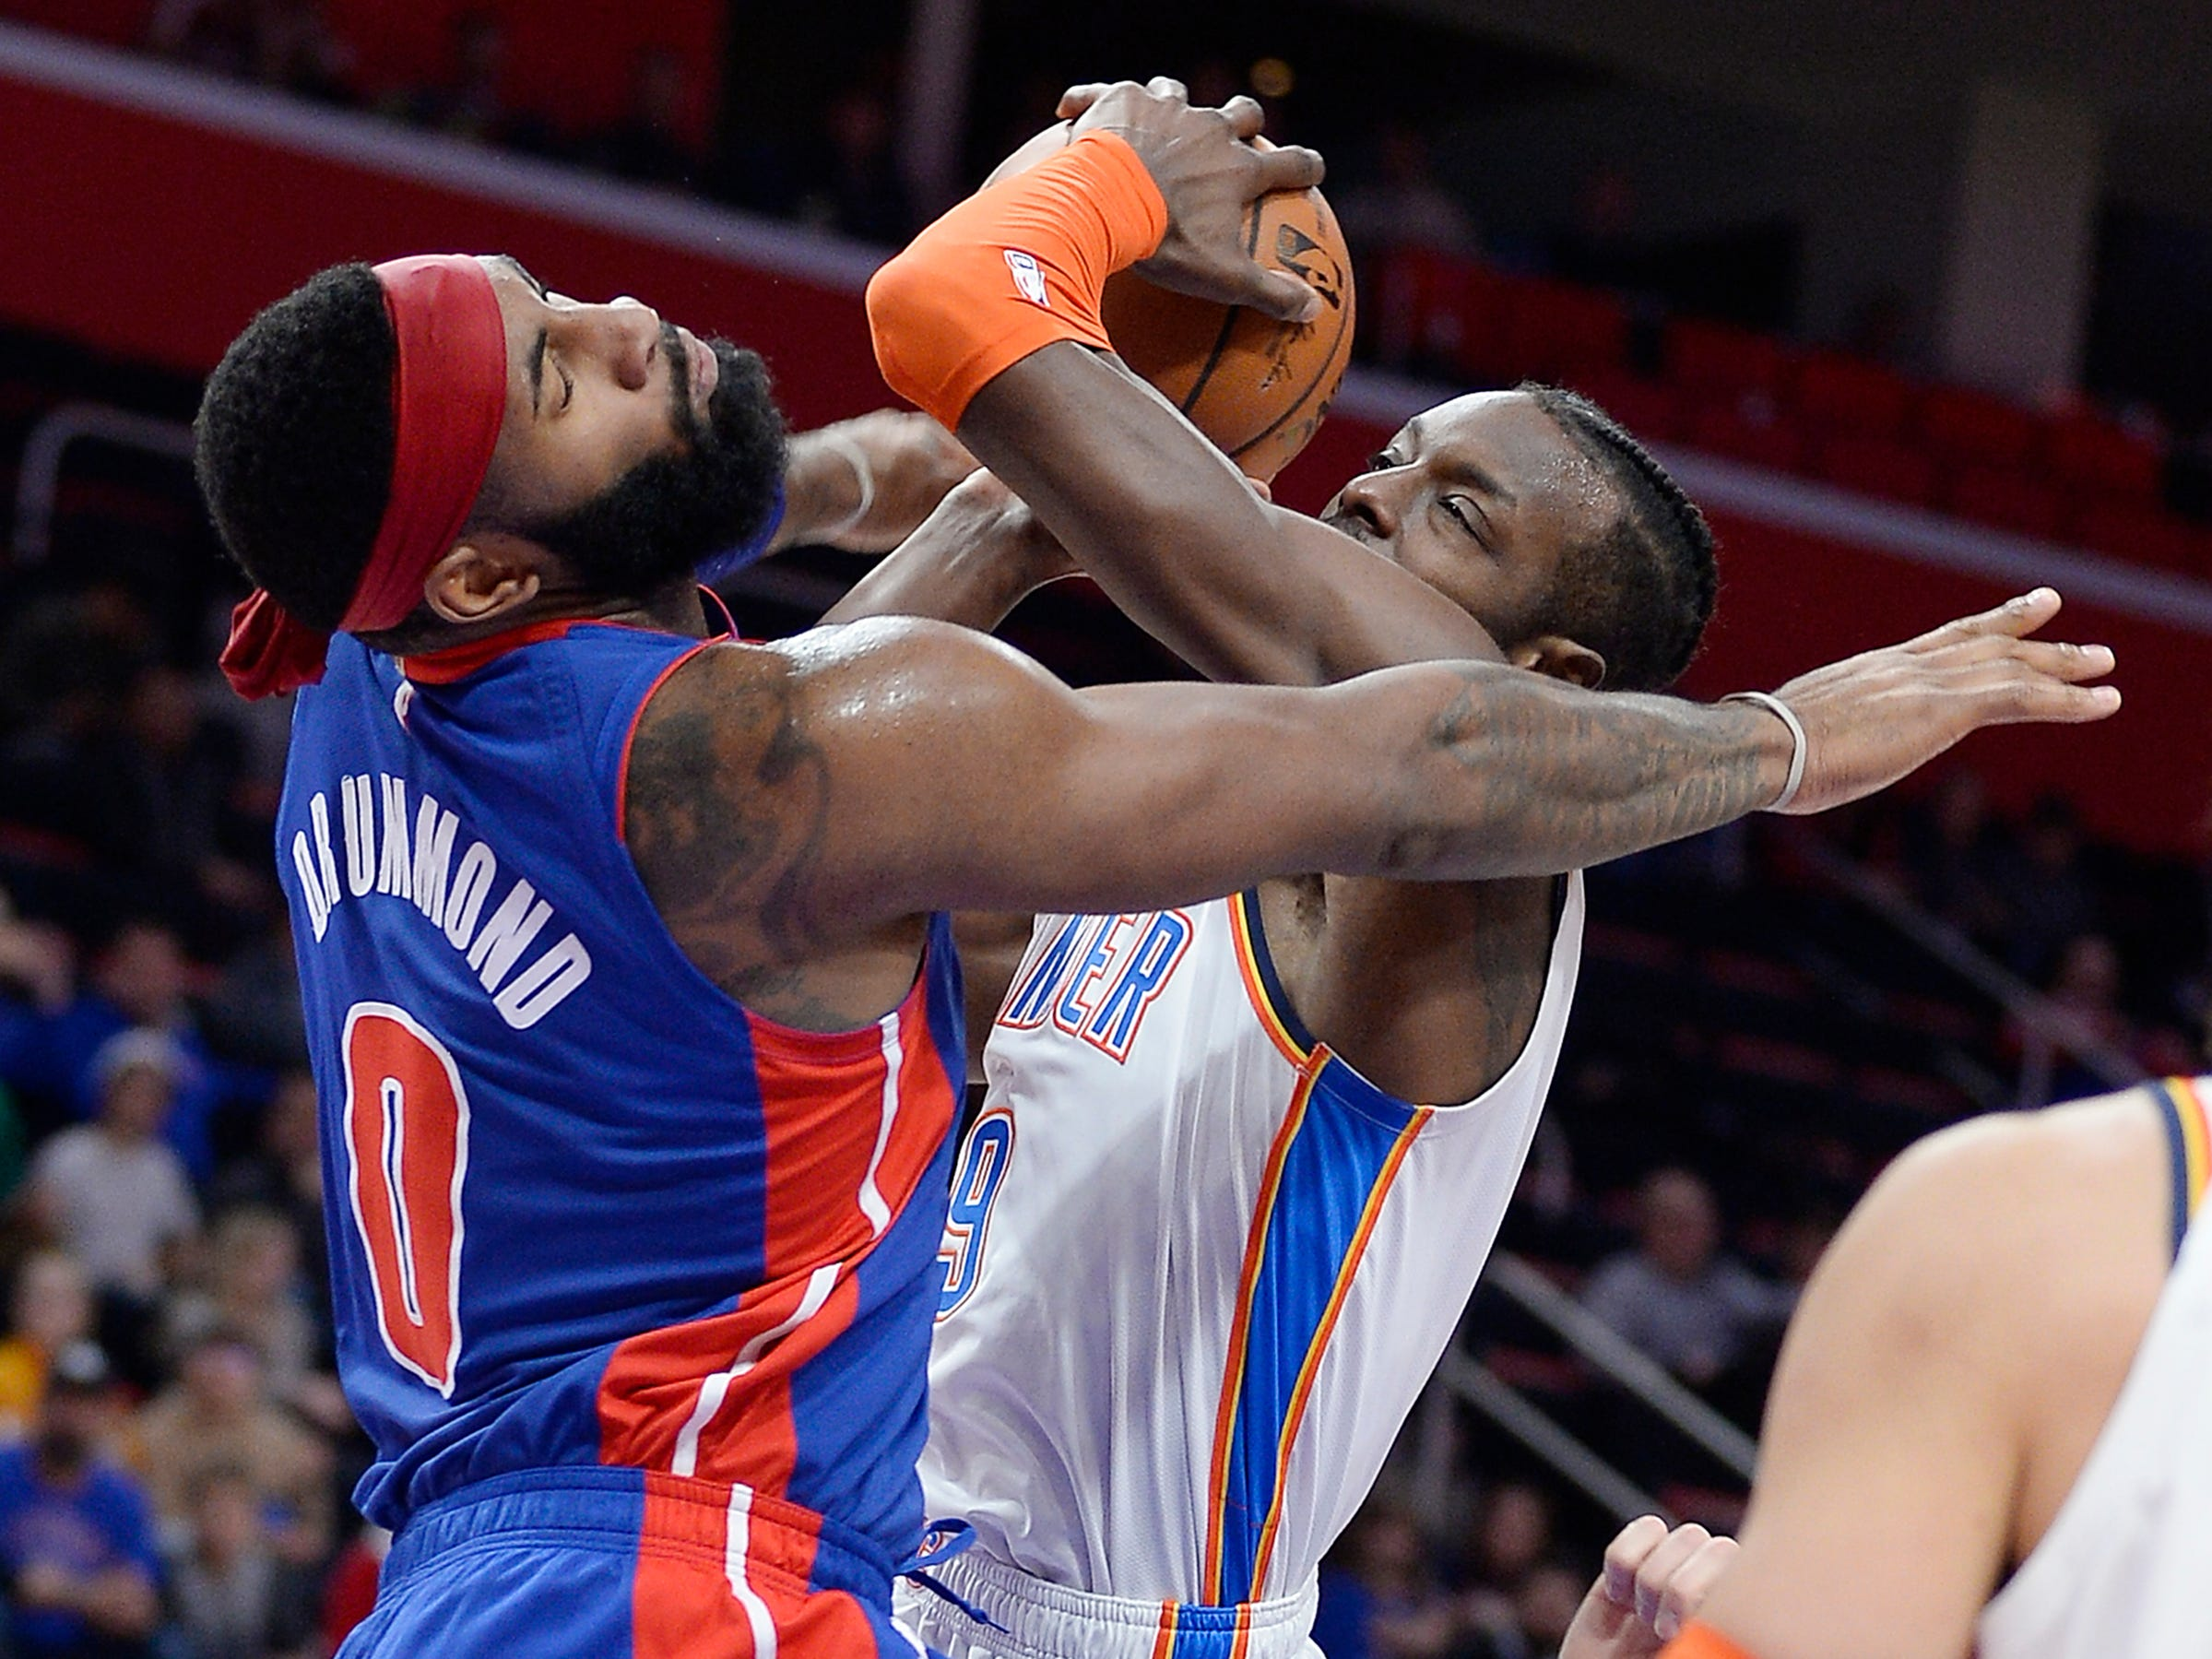 Pistons' Andre Drummond fouls Thunder's Jerami Grant in the third quarter.Drummond had 13 points and 6 rebounds. The Thunder defeated the Pistons 110-83, Monday, December 3, 2018 at Little Caesars Arena in Detroit, Michigan.